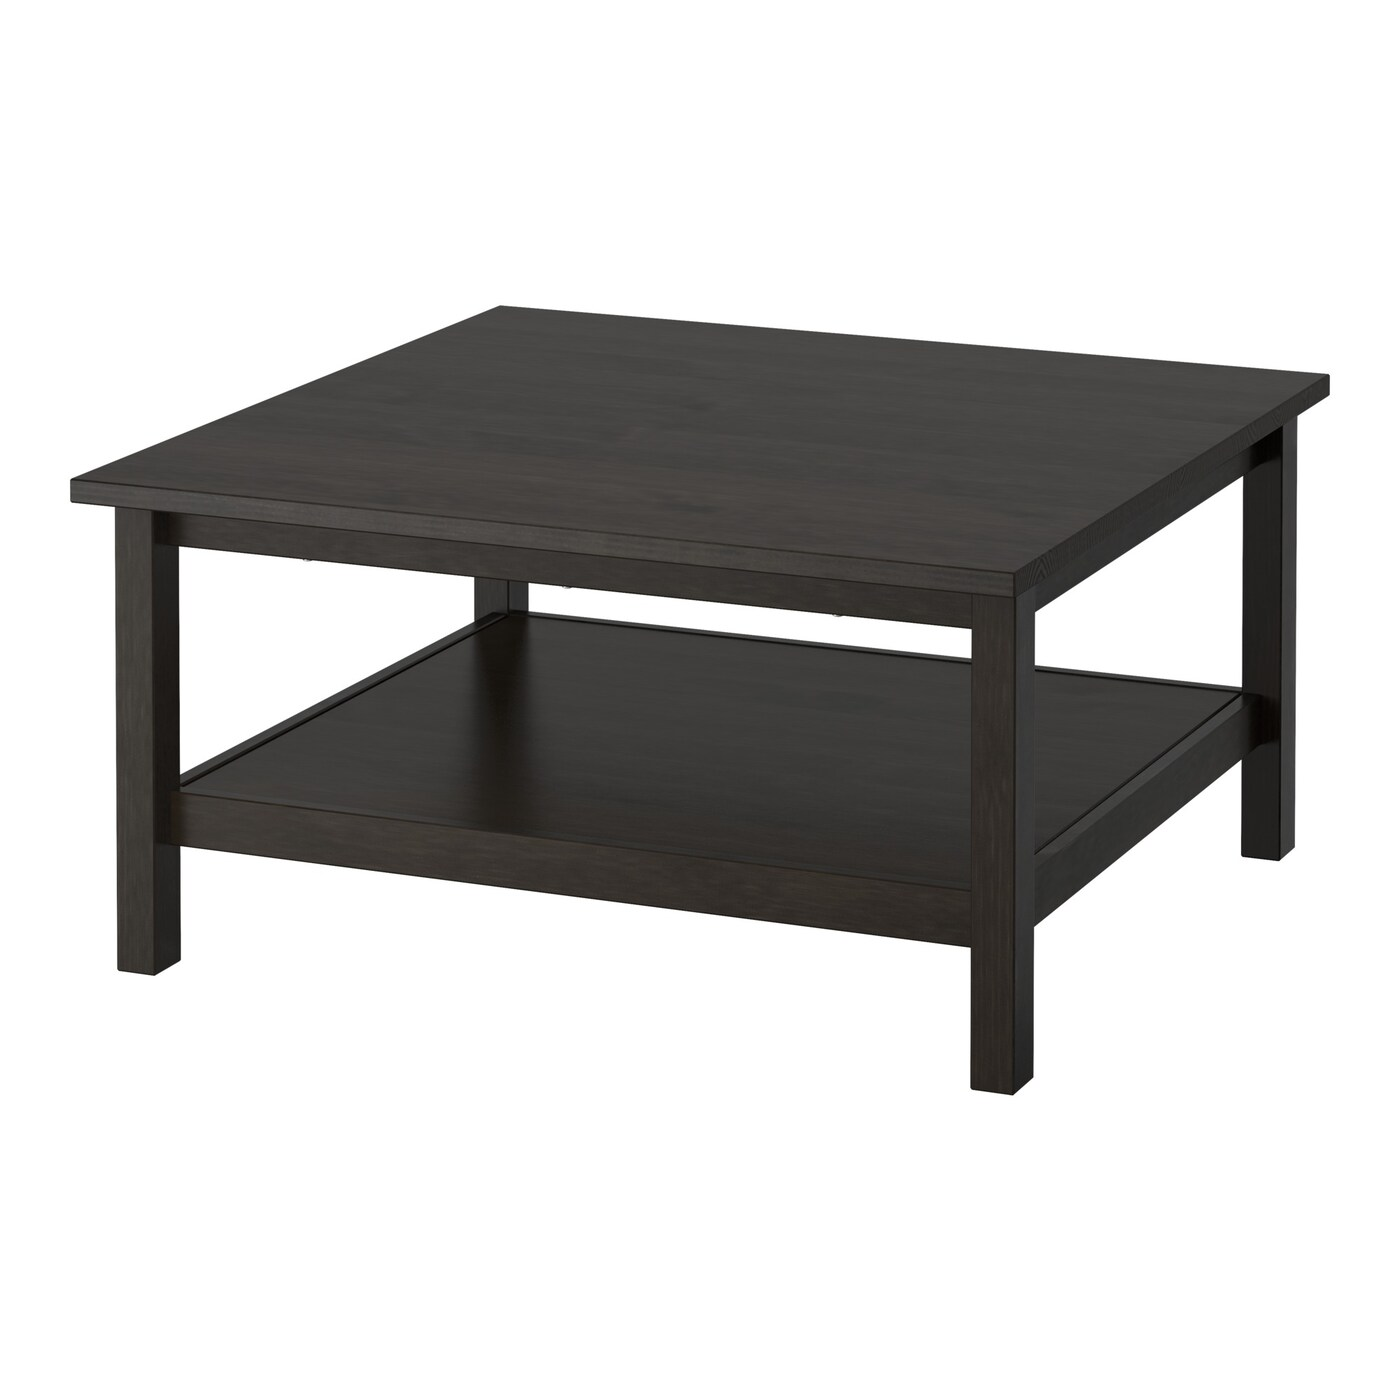 Nornas Ikea Hemnes Coffee Table Black Brown